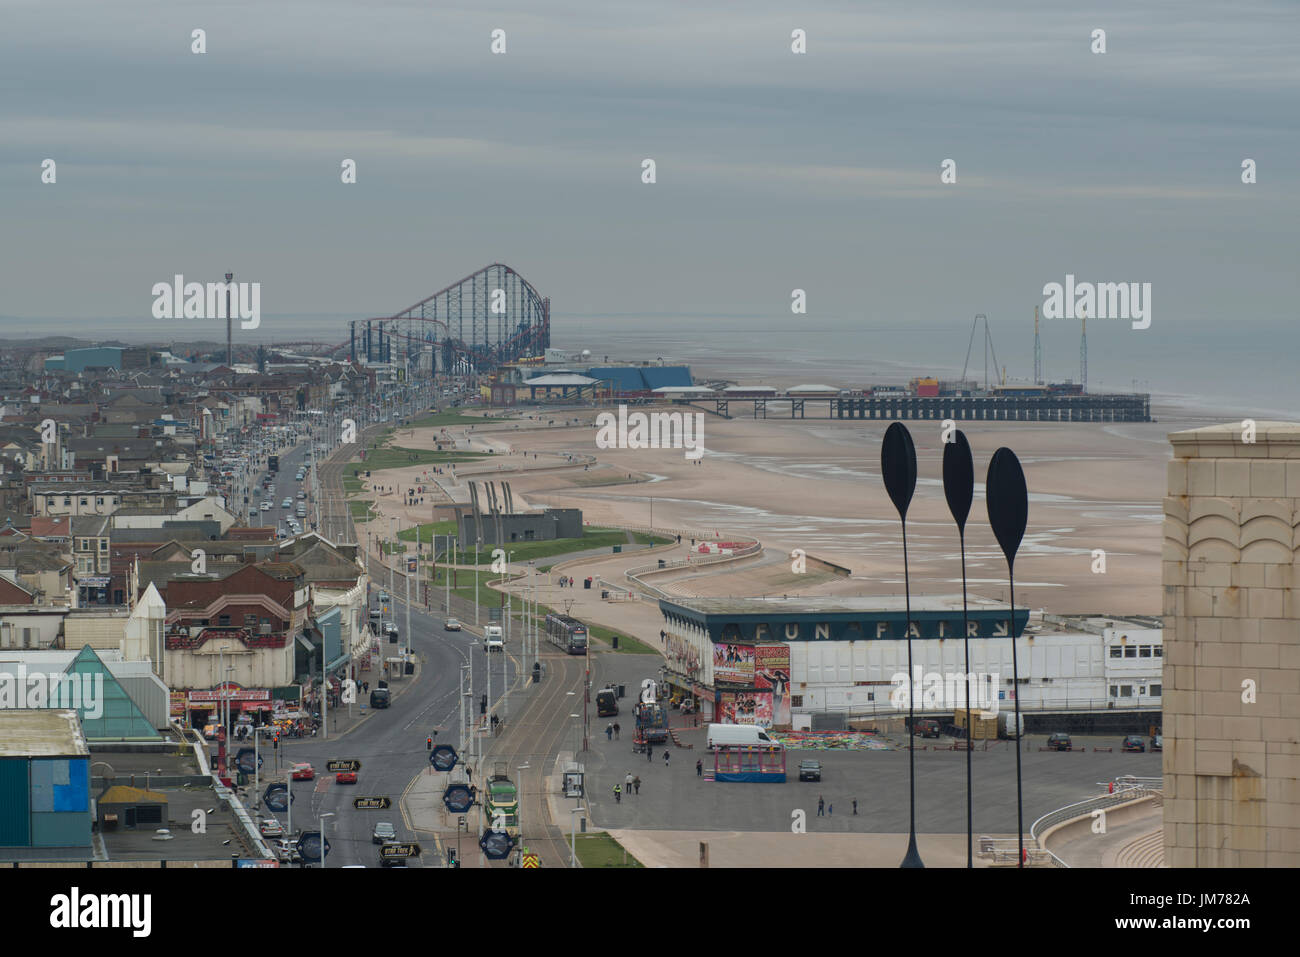 An aerial image of Blackpool's golden mile. With the Pleasure Beaches - Big One roller coaster in the distance. credit: LEE RAMSDEN / ALAMY - Stock Image